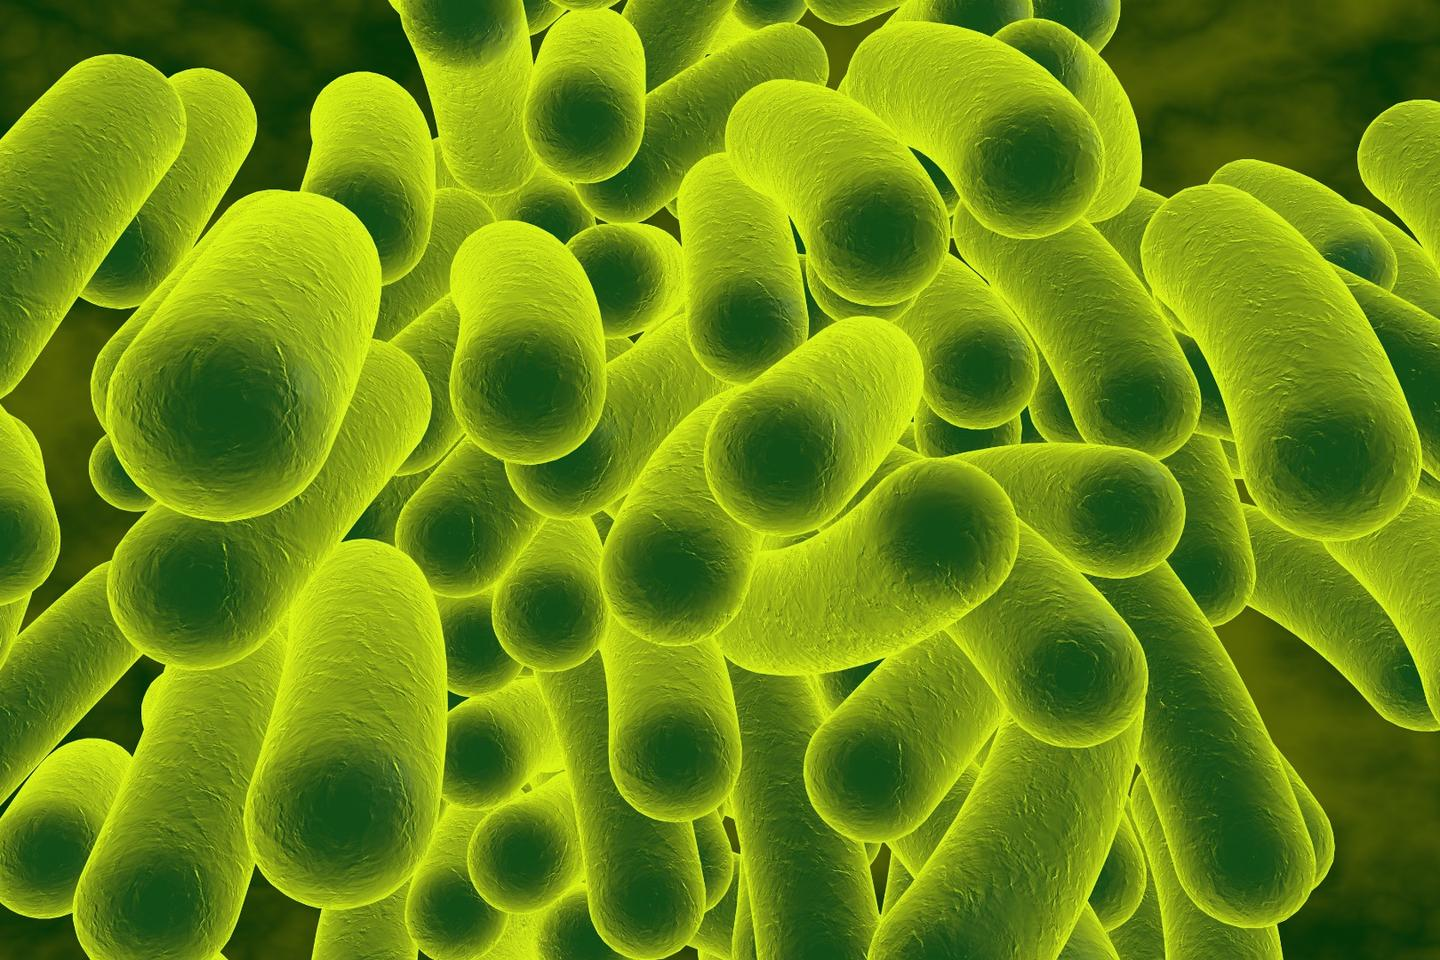 Researchers have found a way to counter the evolutionary catalyst that lets bacteria become resistant to antibiotics